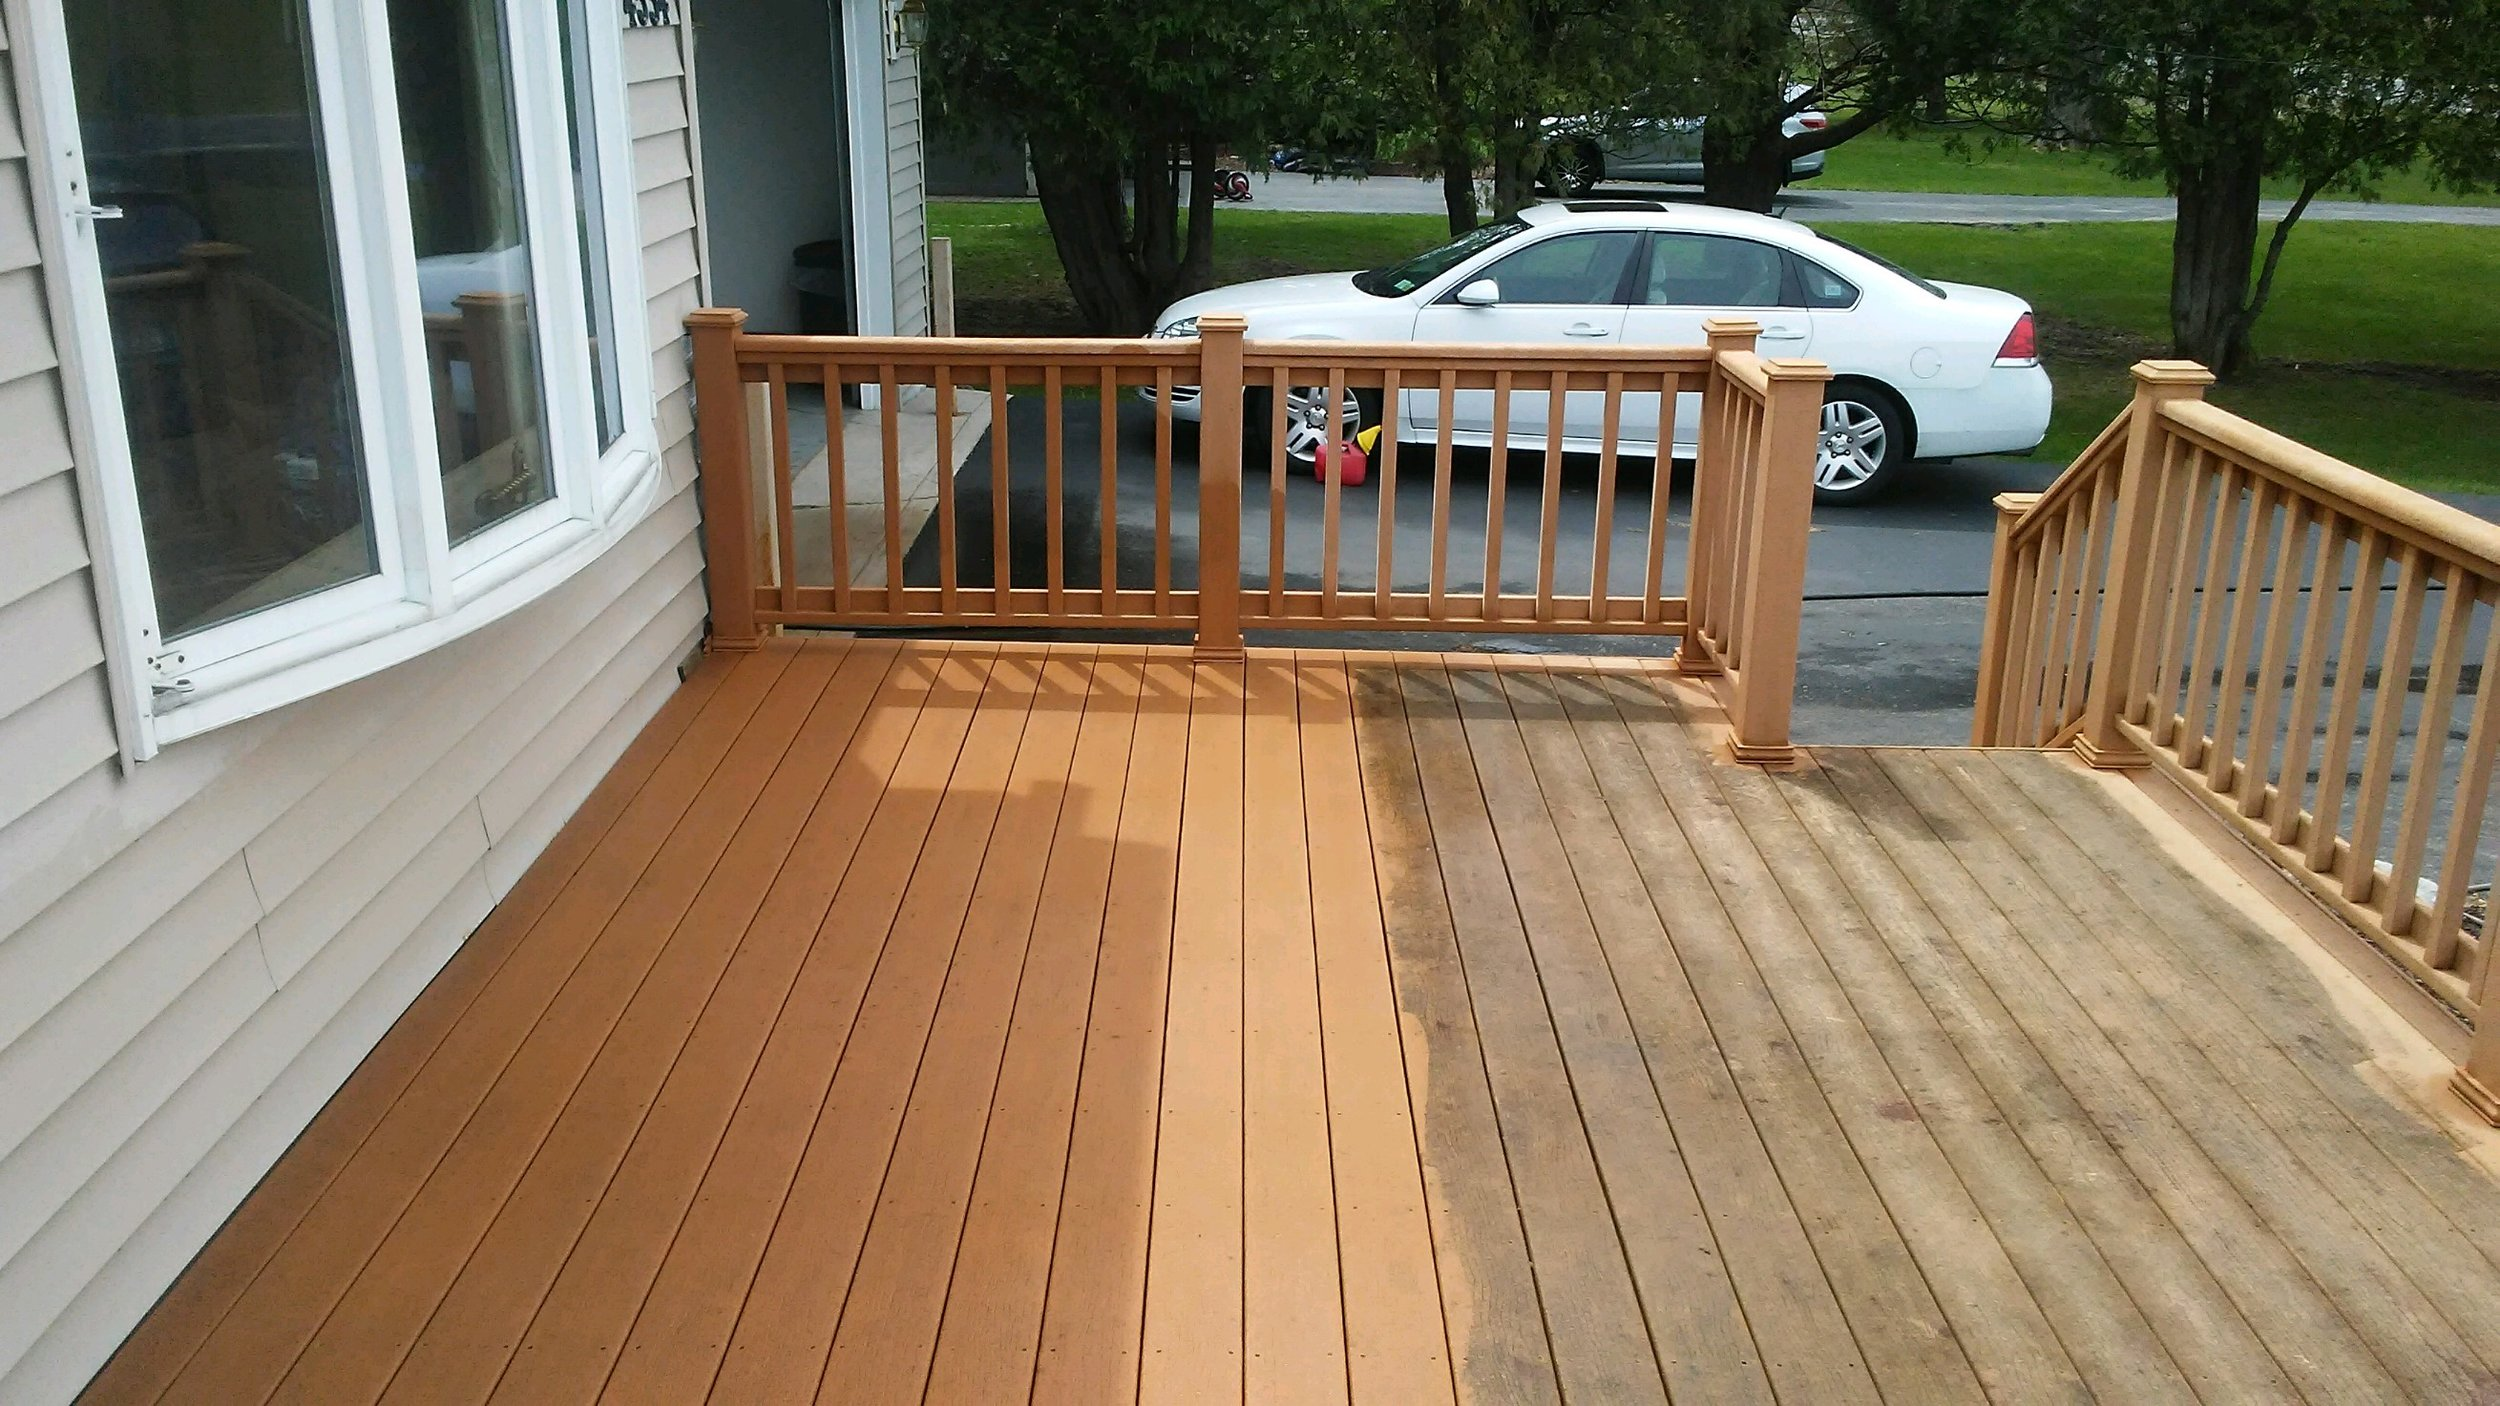 Left half of deck is cleaned. Part of it is shaded and part is in the sun.